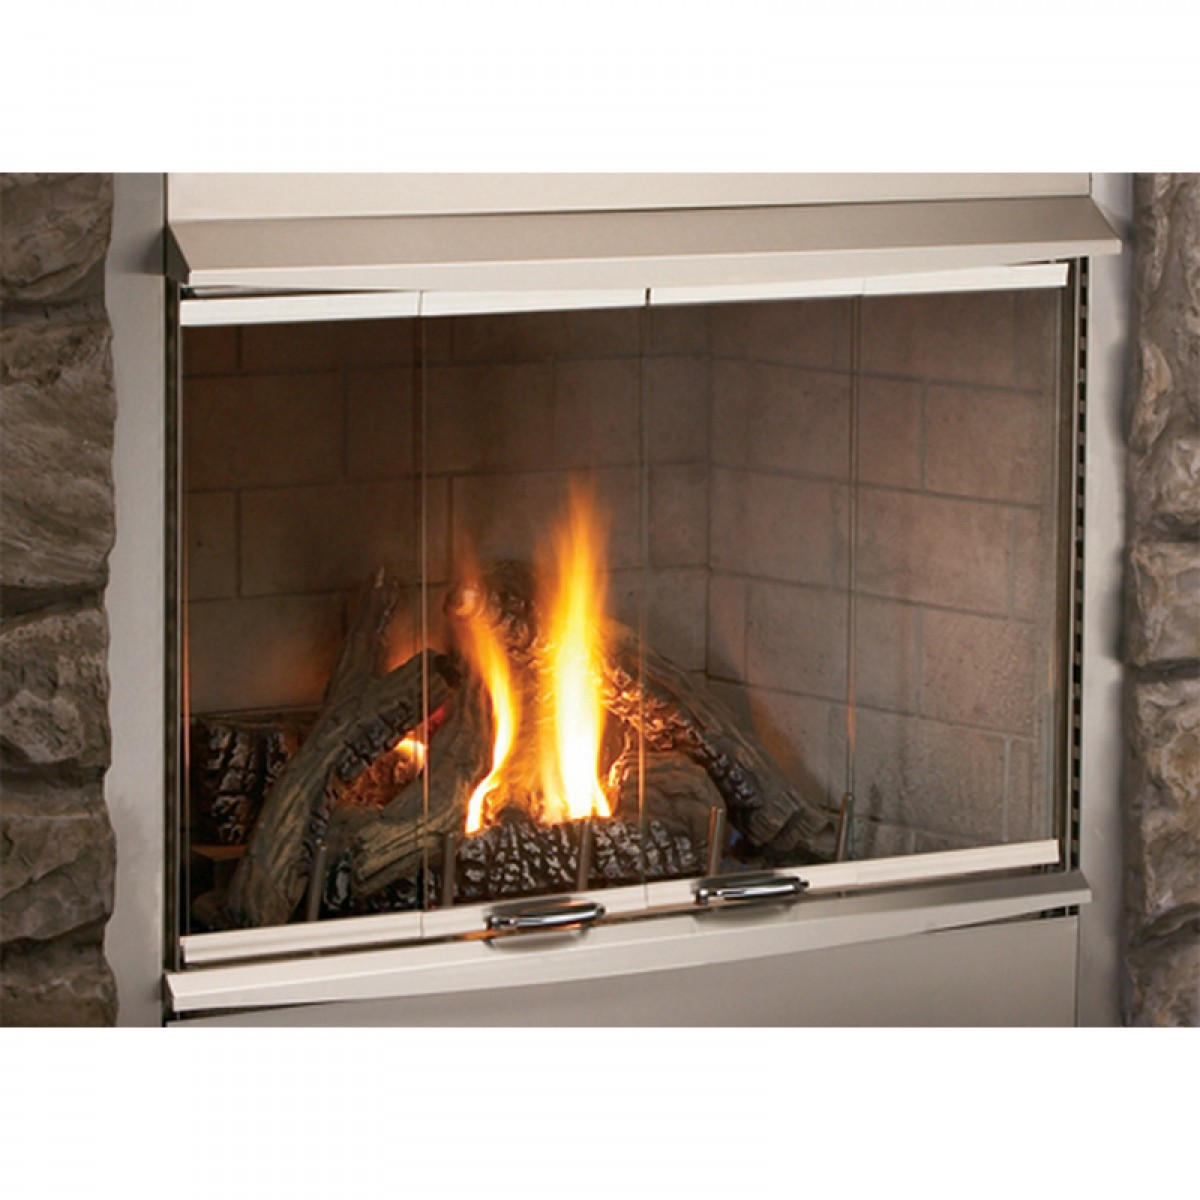 ihp superior vre4336pen 36 ng ventfree fireplace white